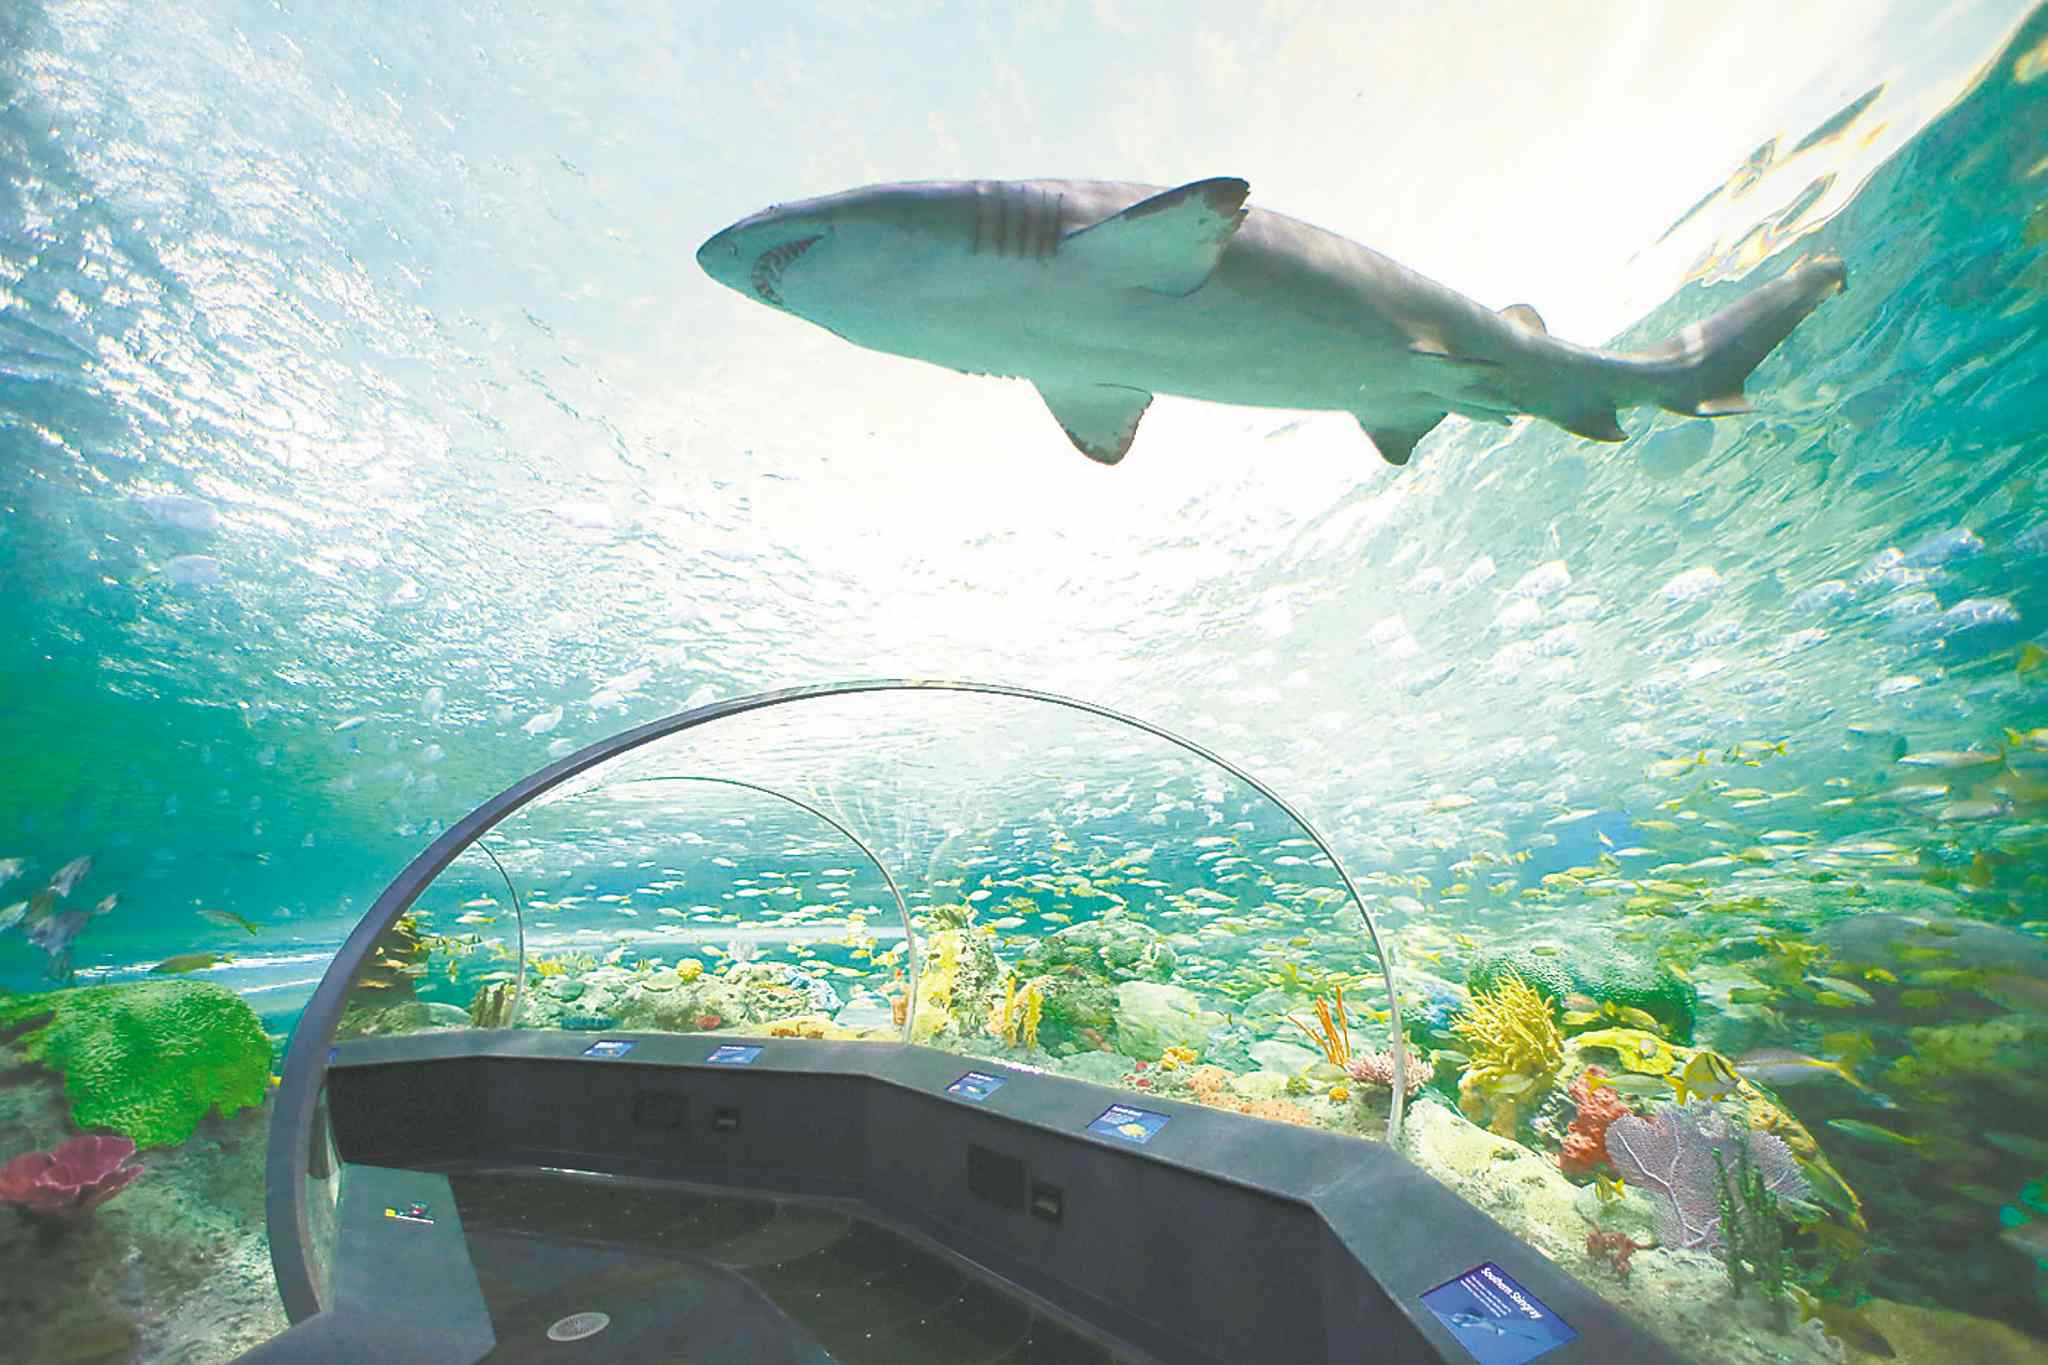 The newly opened Ripley's Aquarium in Toronto is Canada's largest indoor aquarium.